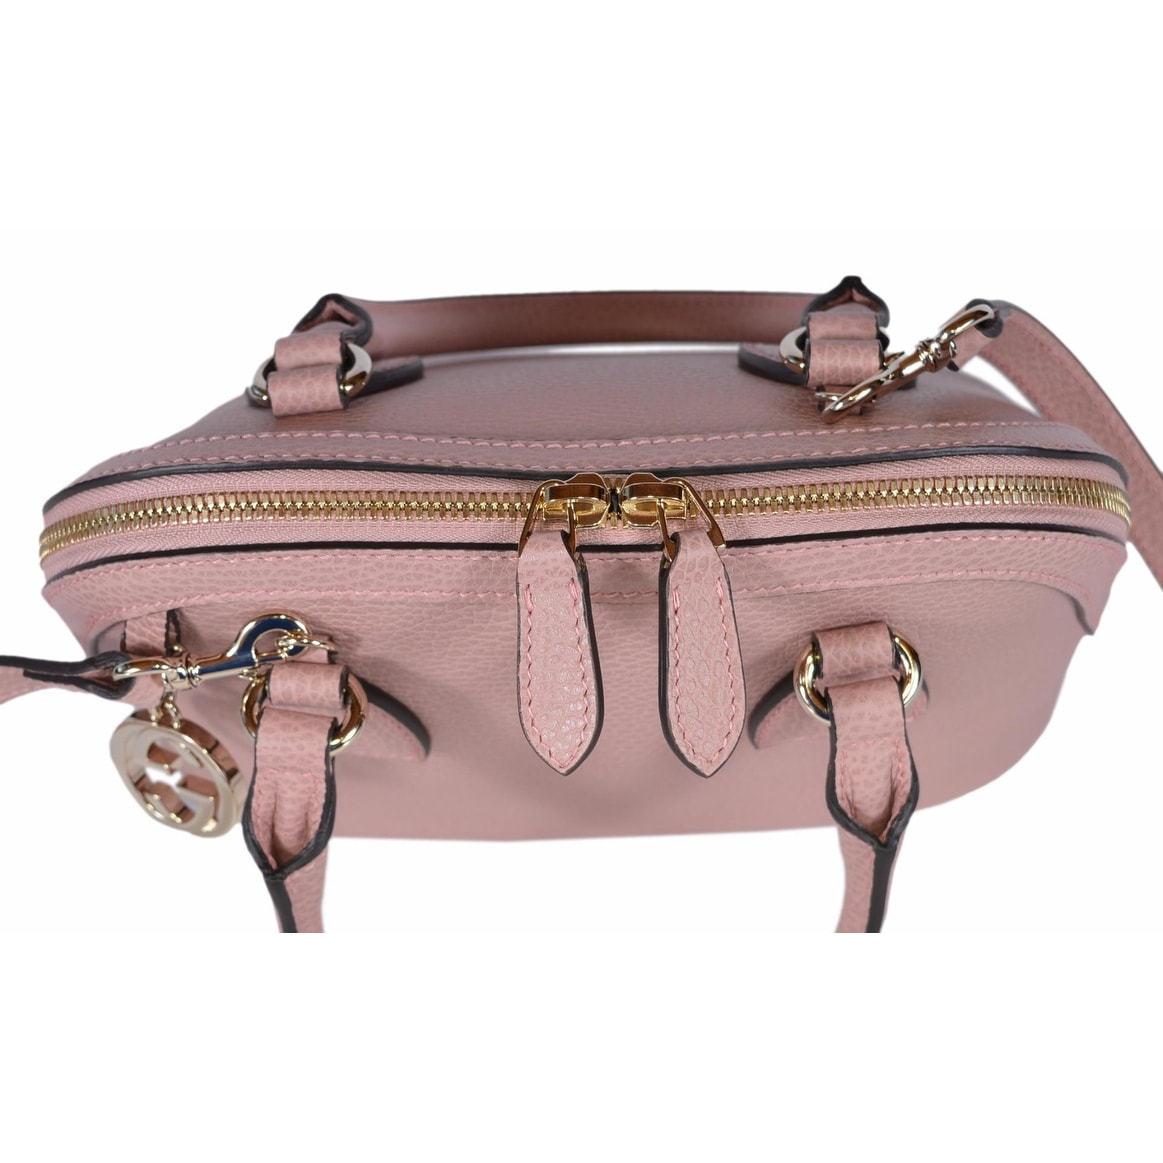 1c0f9fc4ca12 Shop Gucci 449661 Soft Pink Leather 2-Way Convertible GG Charm Small Dome  Purse - BABY PINK - 9.06 x 7.48 x 4.72 inches - Free Shipping Today -  Overstock - ...